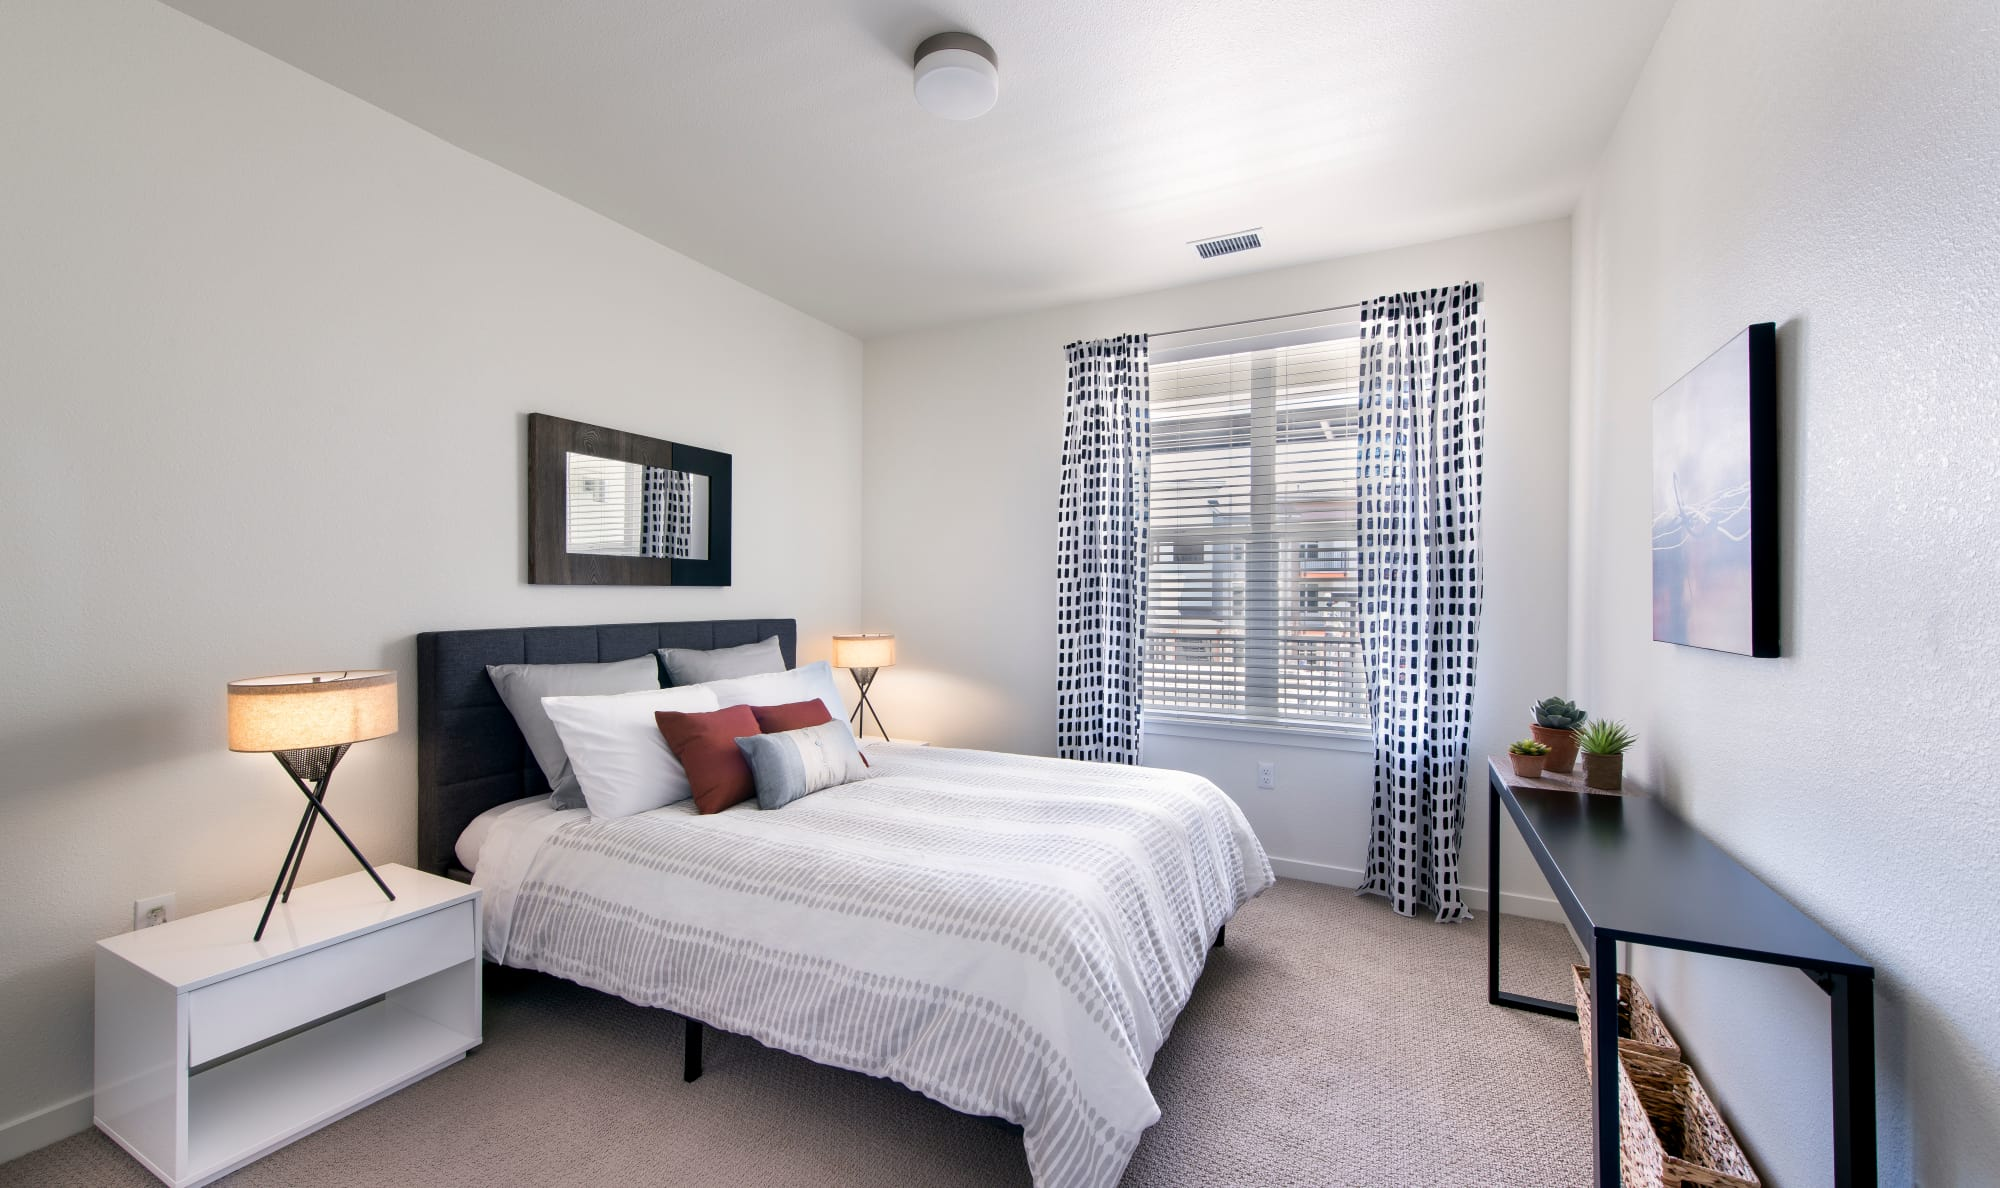 Bedroom layout at Elevate in Englewood, Colorado